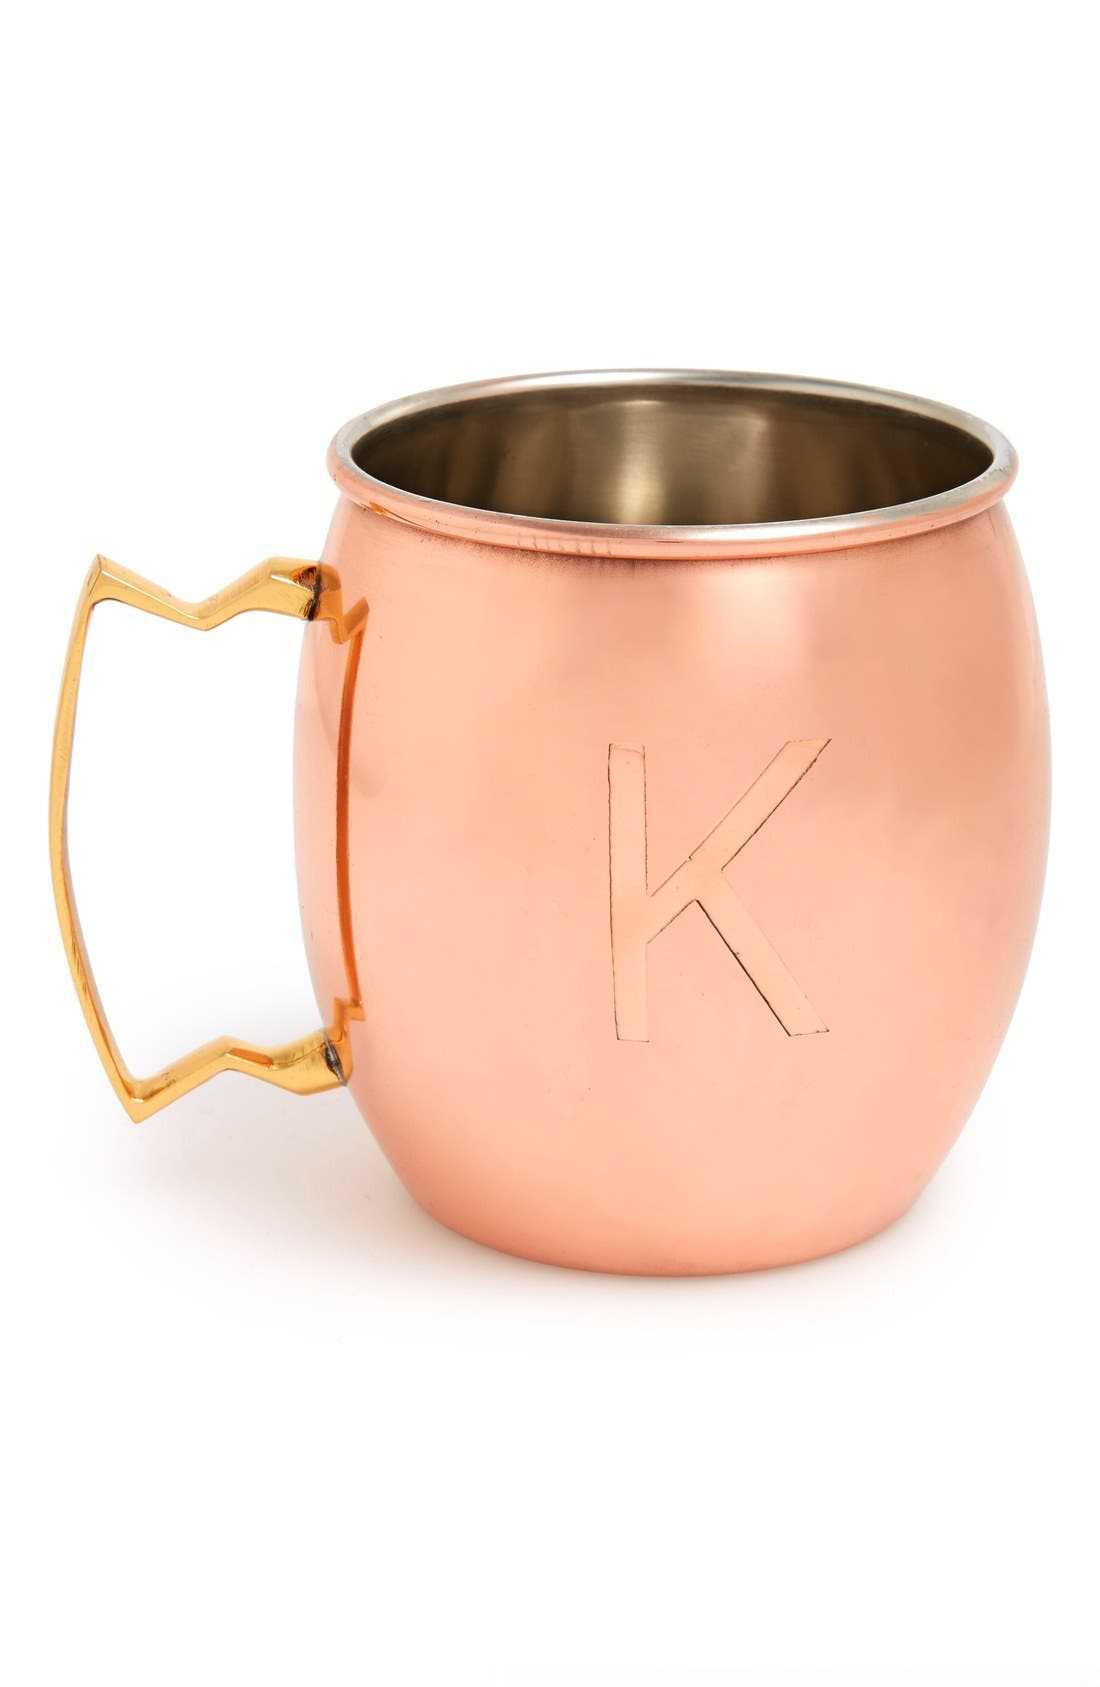 Main Image - MG Décor Customized Copper Moscow Mule Mug